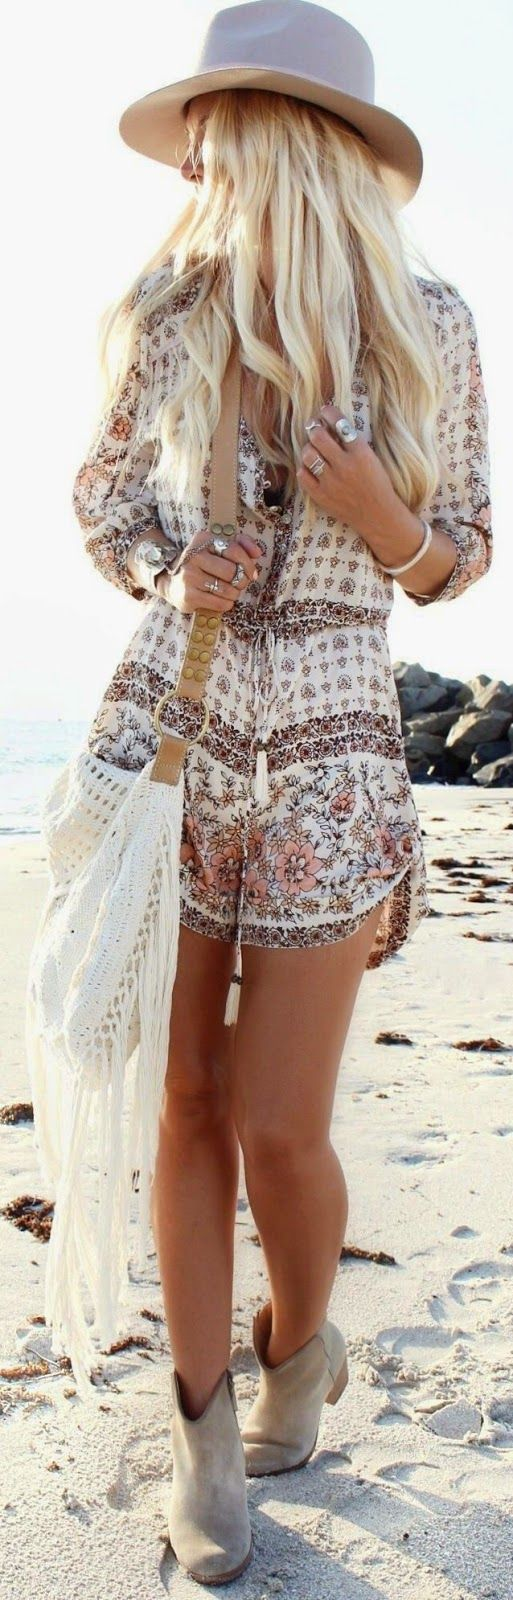 25 Summer Beach Outfits 2017 - Beach Outfit Ideas for Women